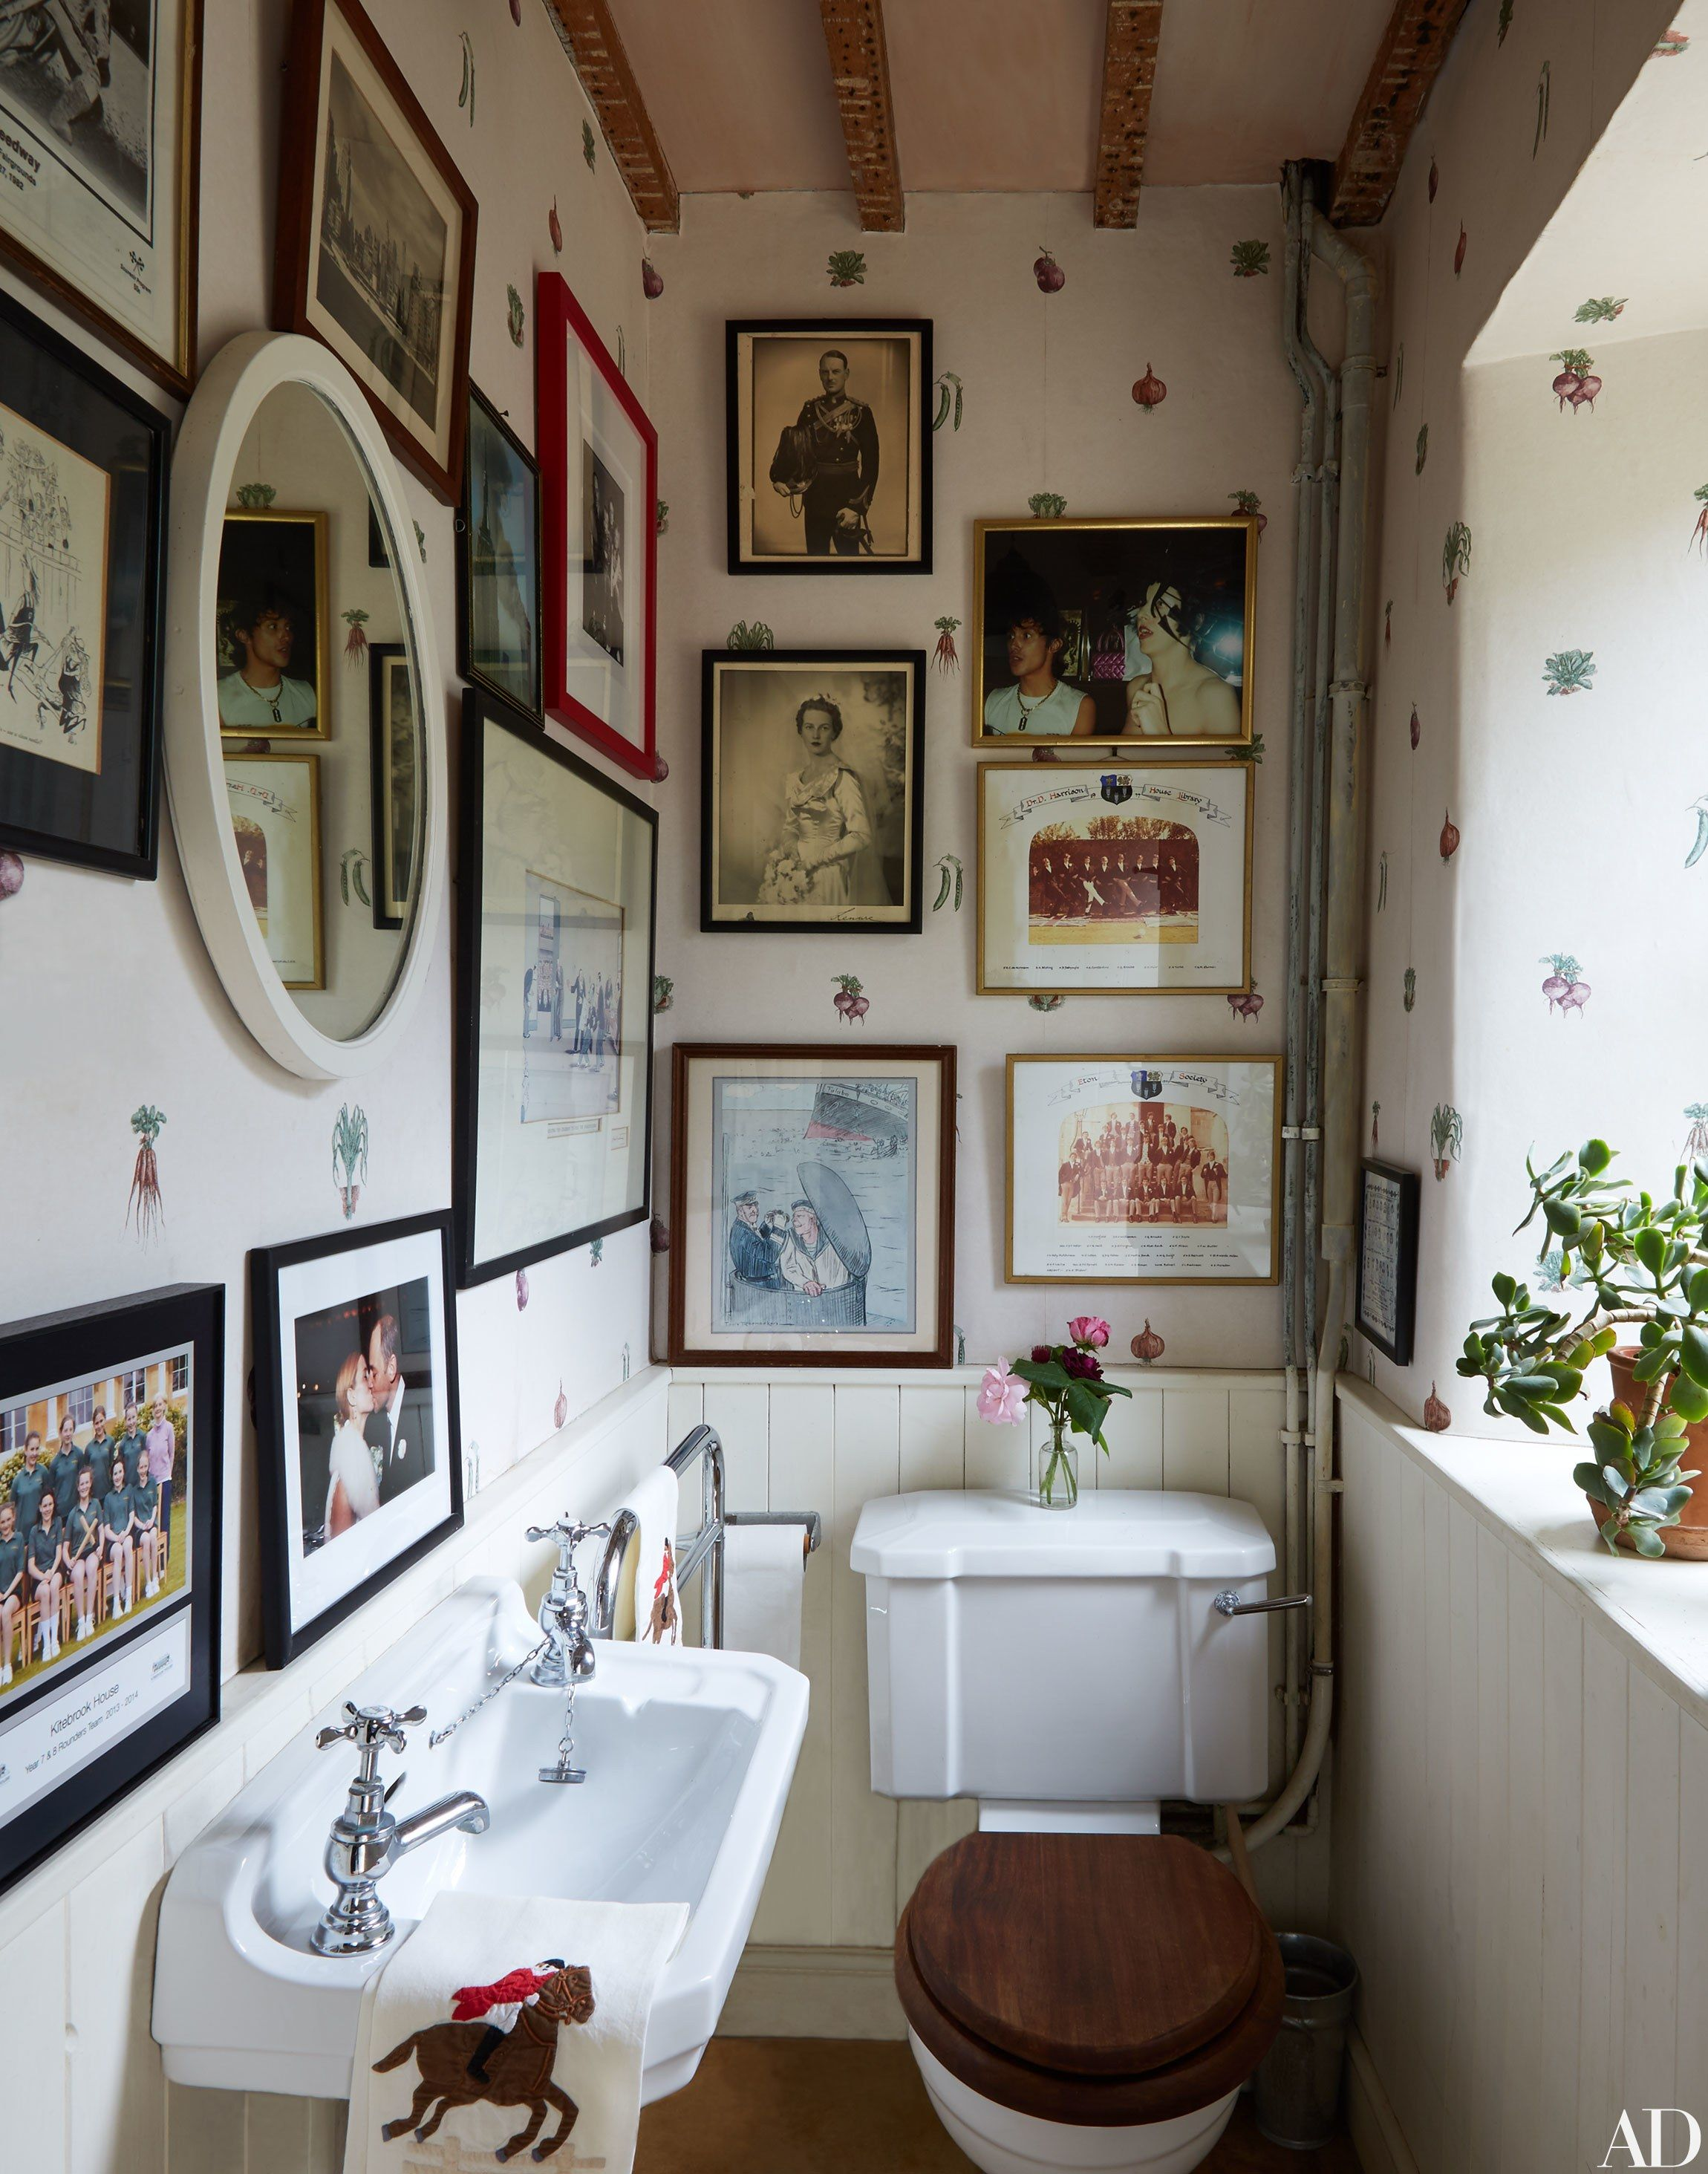 English Bathroom Design Best Amanda Brooks Invites Us Inside Her Dreamy English Country Home Design Ideas